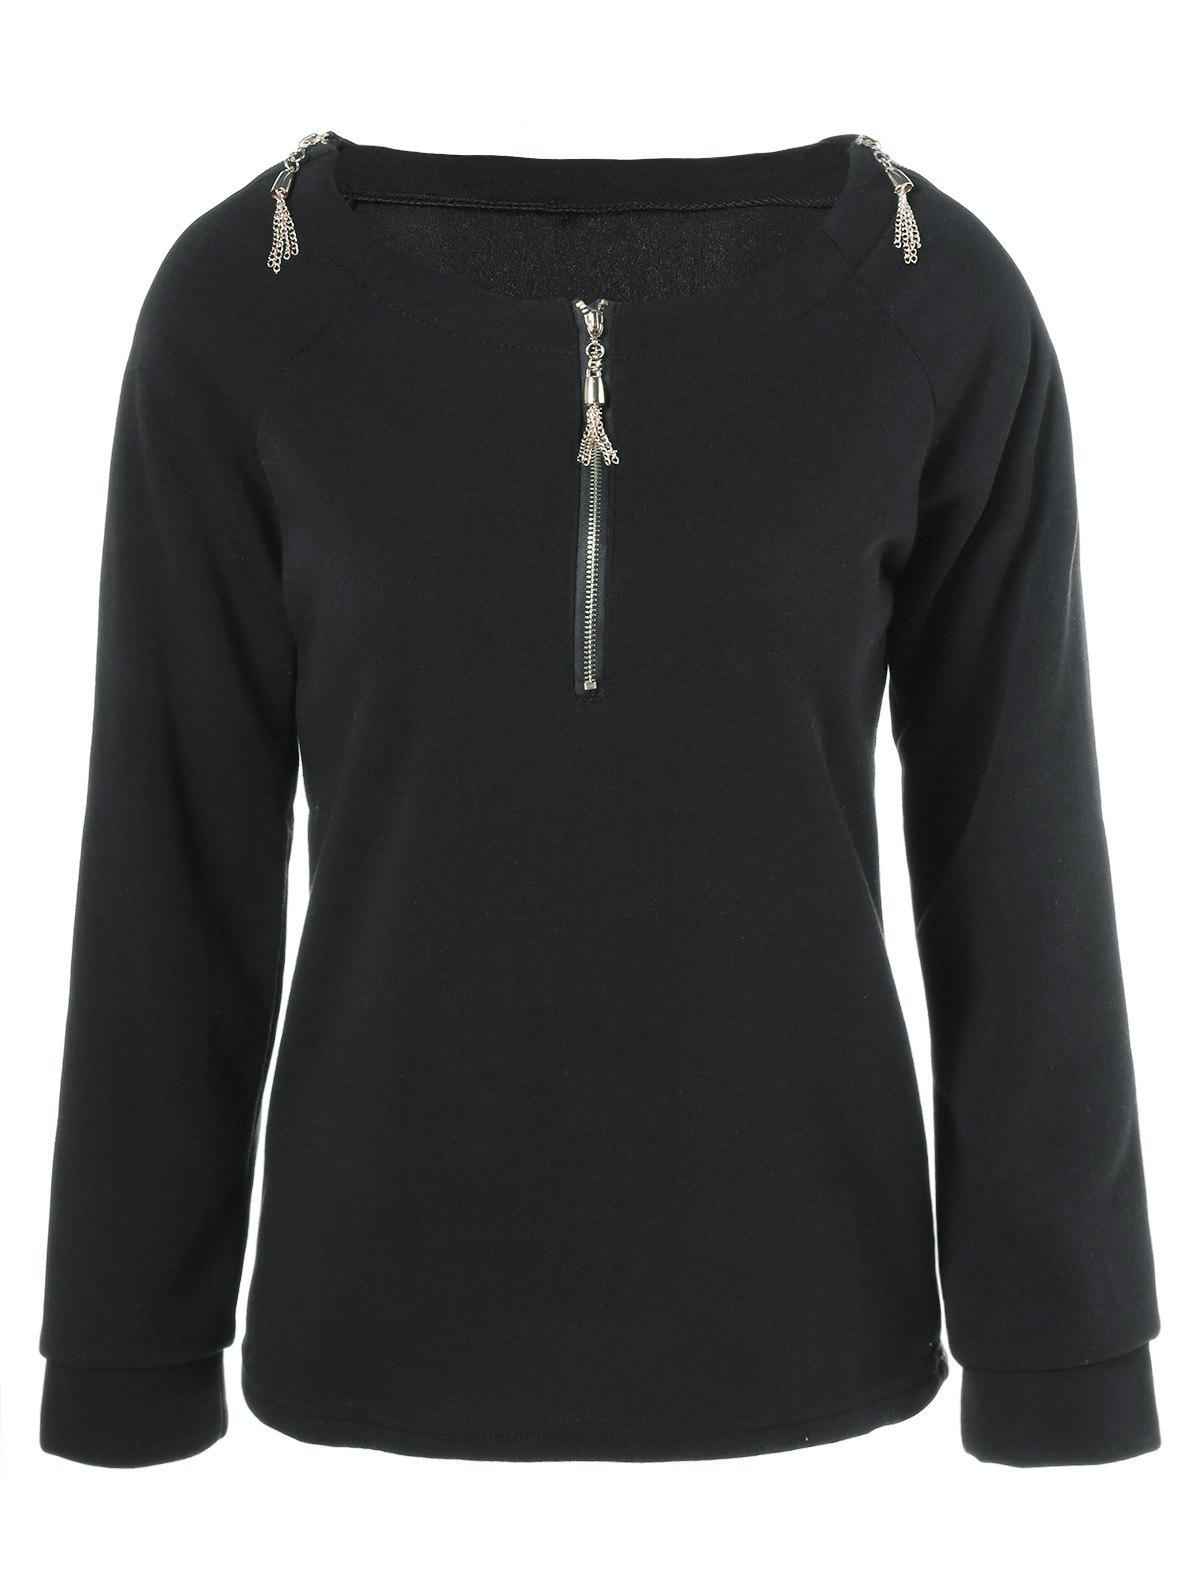 Sleeve Zipper Conception long T-shirt - Noir L